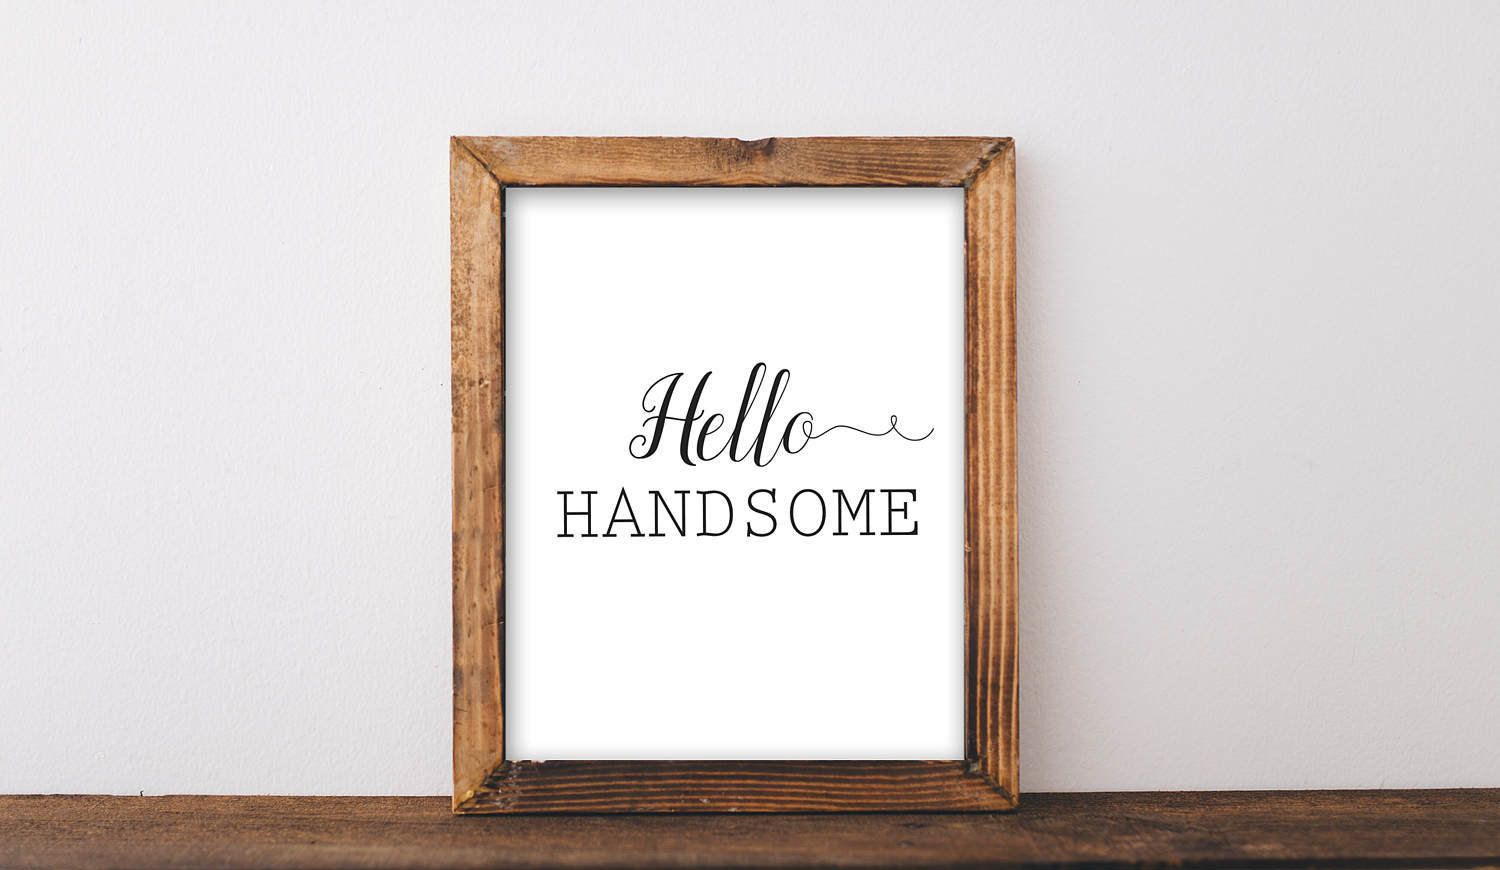 Hello handsome printable hello handsome sign wall art wall decor